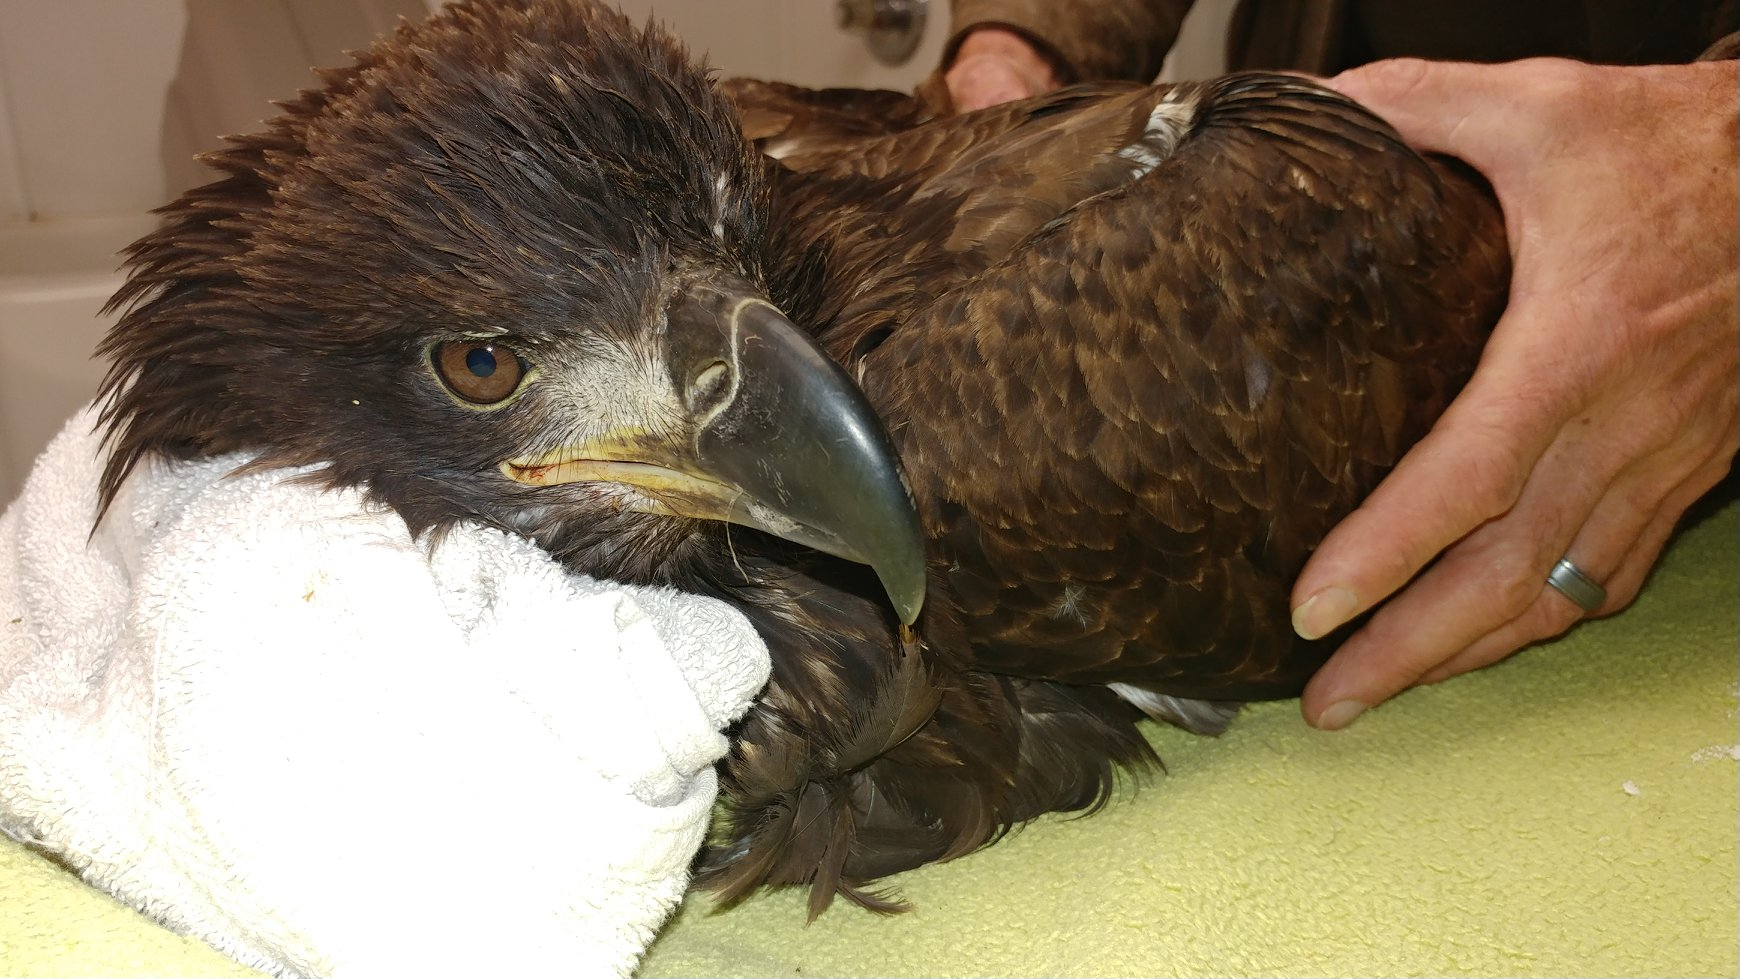 Juvenile Bald Eagle was hit by a vehicle today in south of WI Rapids.